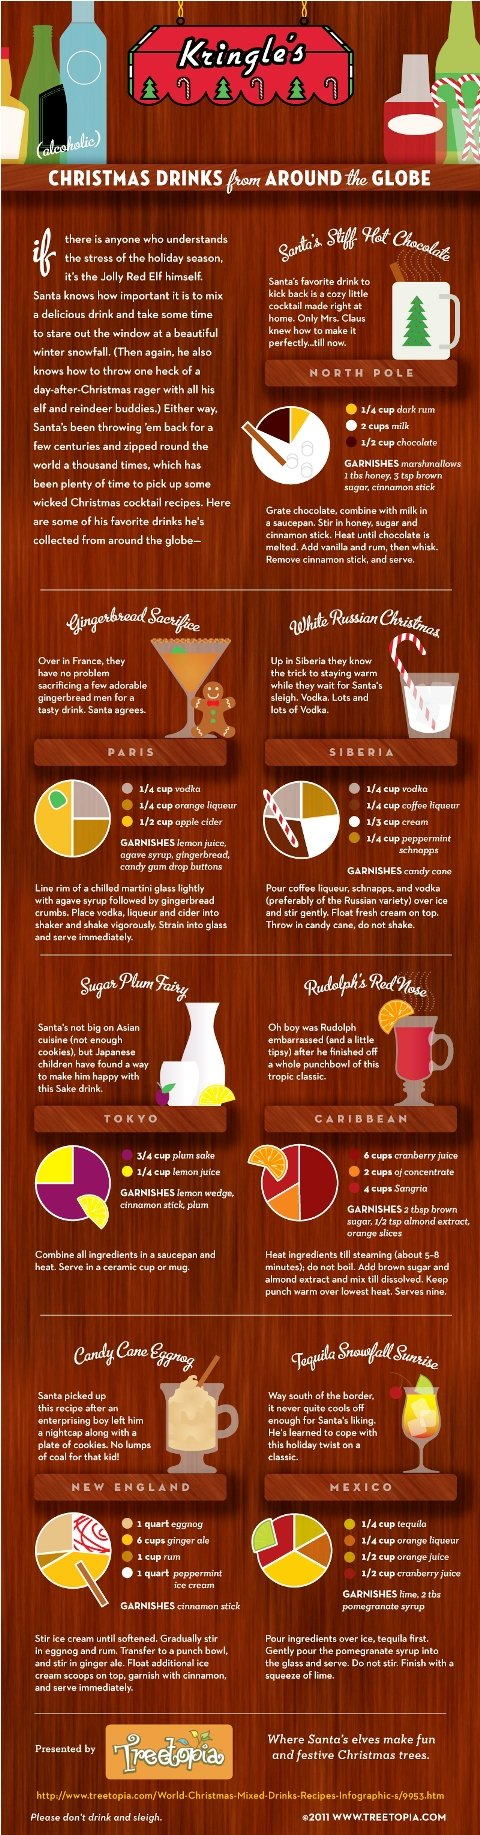 Christmas Drinks from around the gold #infographic